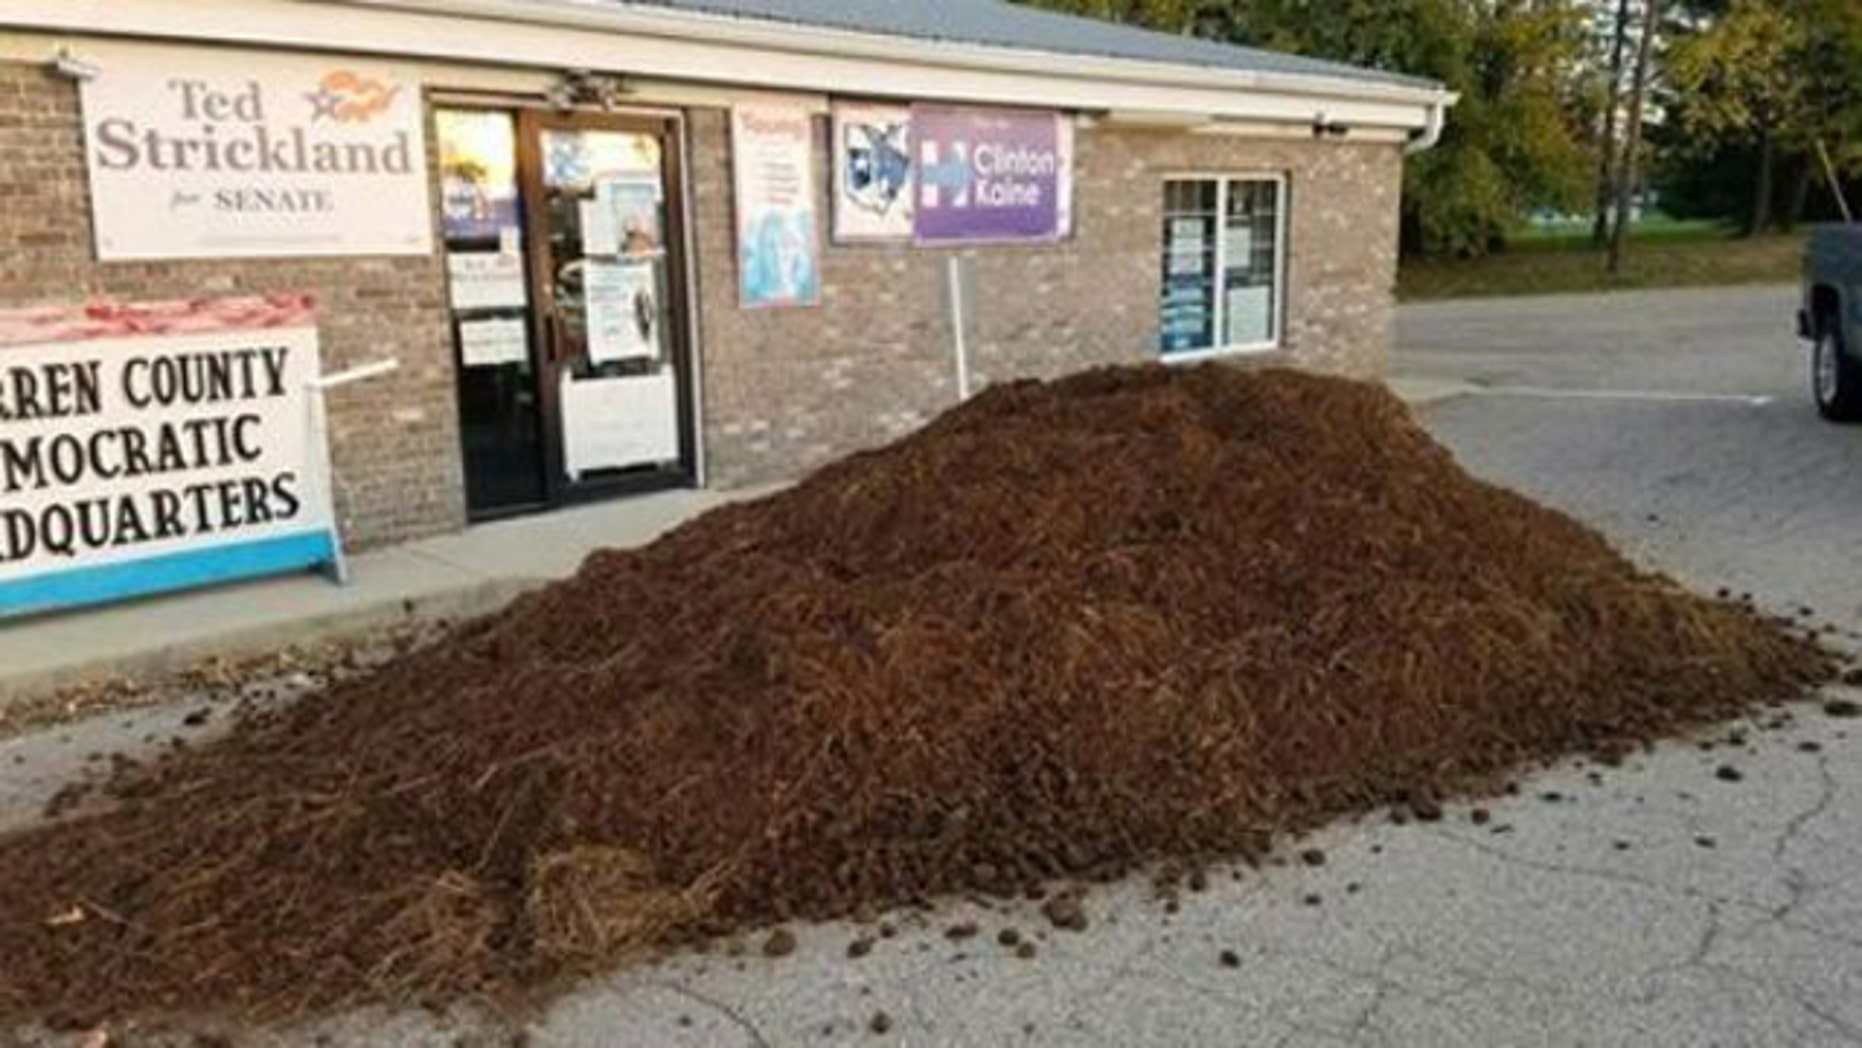 Oct. 29, 2016: This photo shows a pile of manure that was dumped outside the headquarters of the Warren County, Ohio Democratic Party